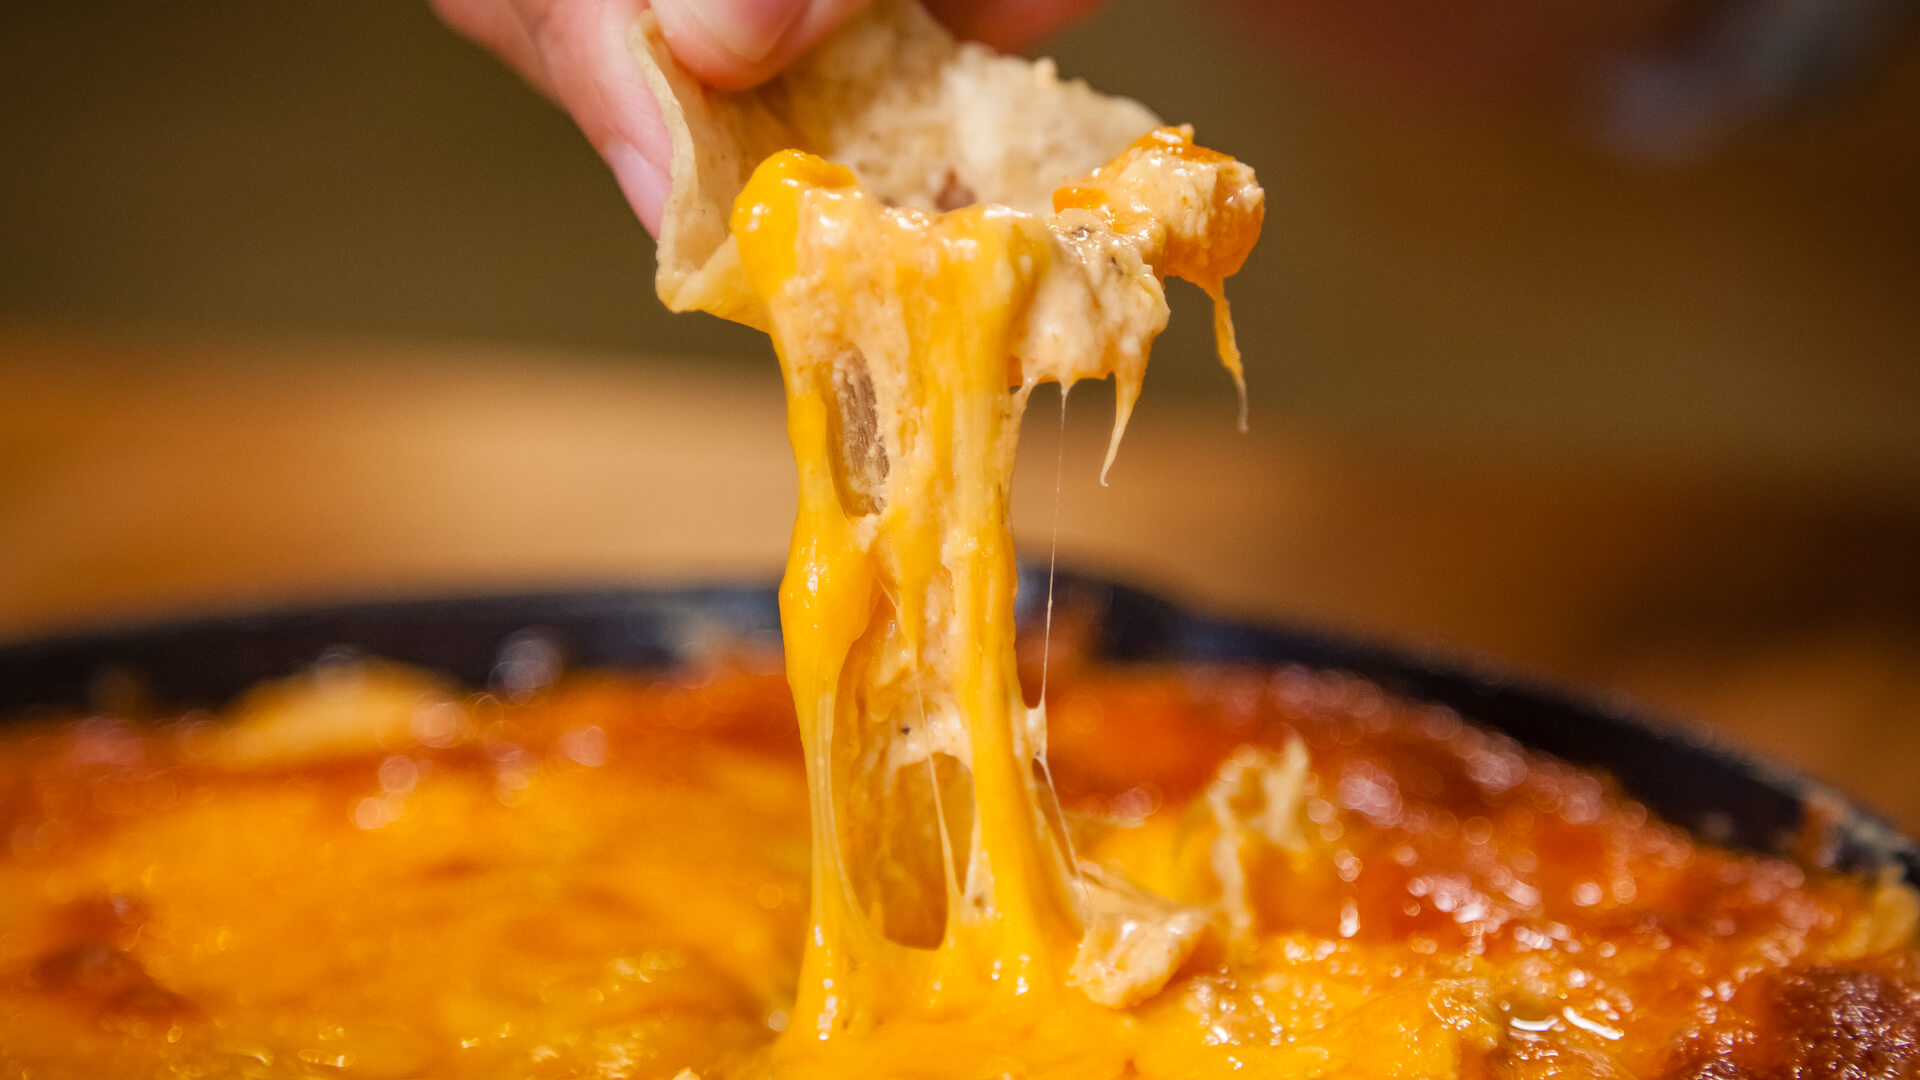 Indulge Your Snack Fix With Some Cajun Cheesy Chicken Dip